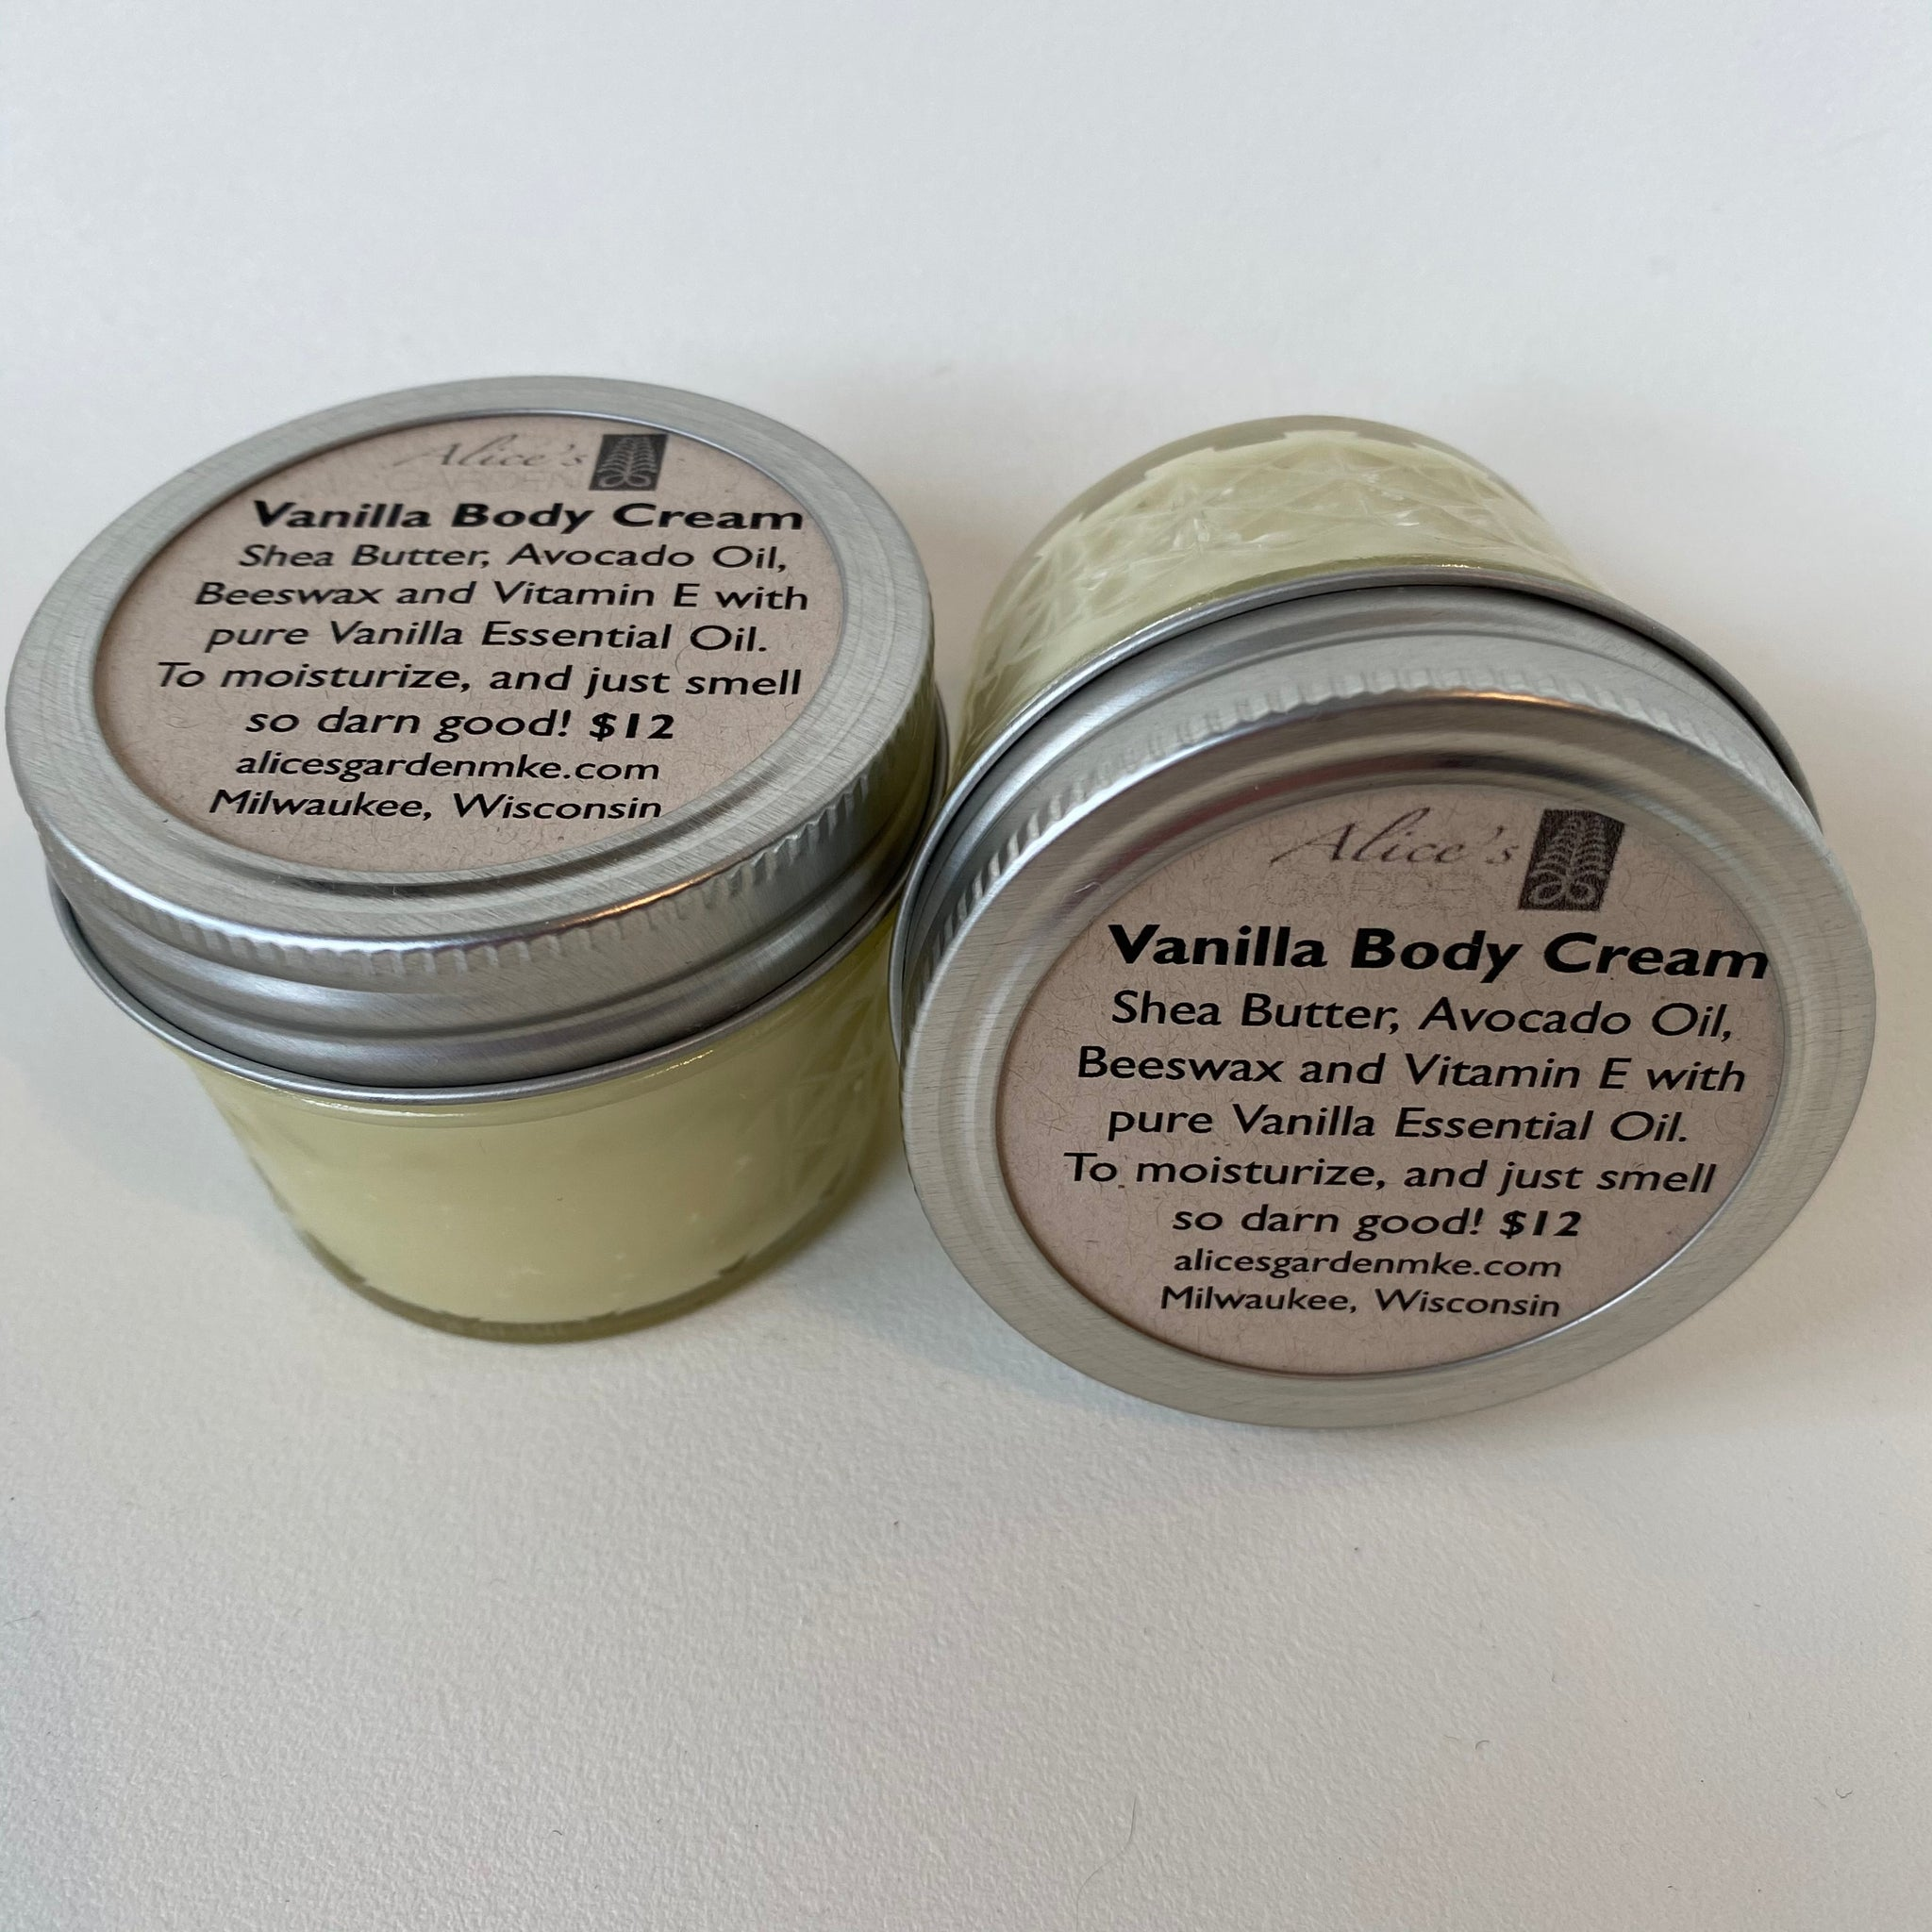 Alice's Garden Vanilla Body Cream